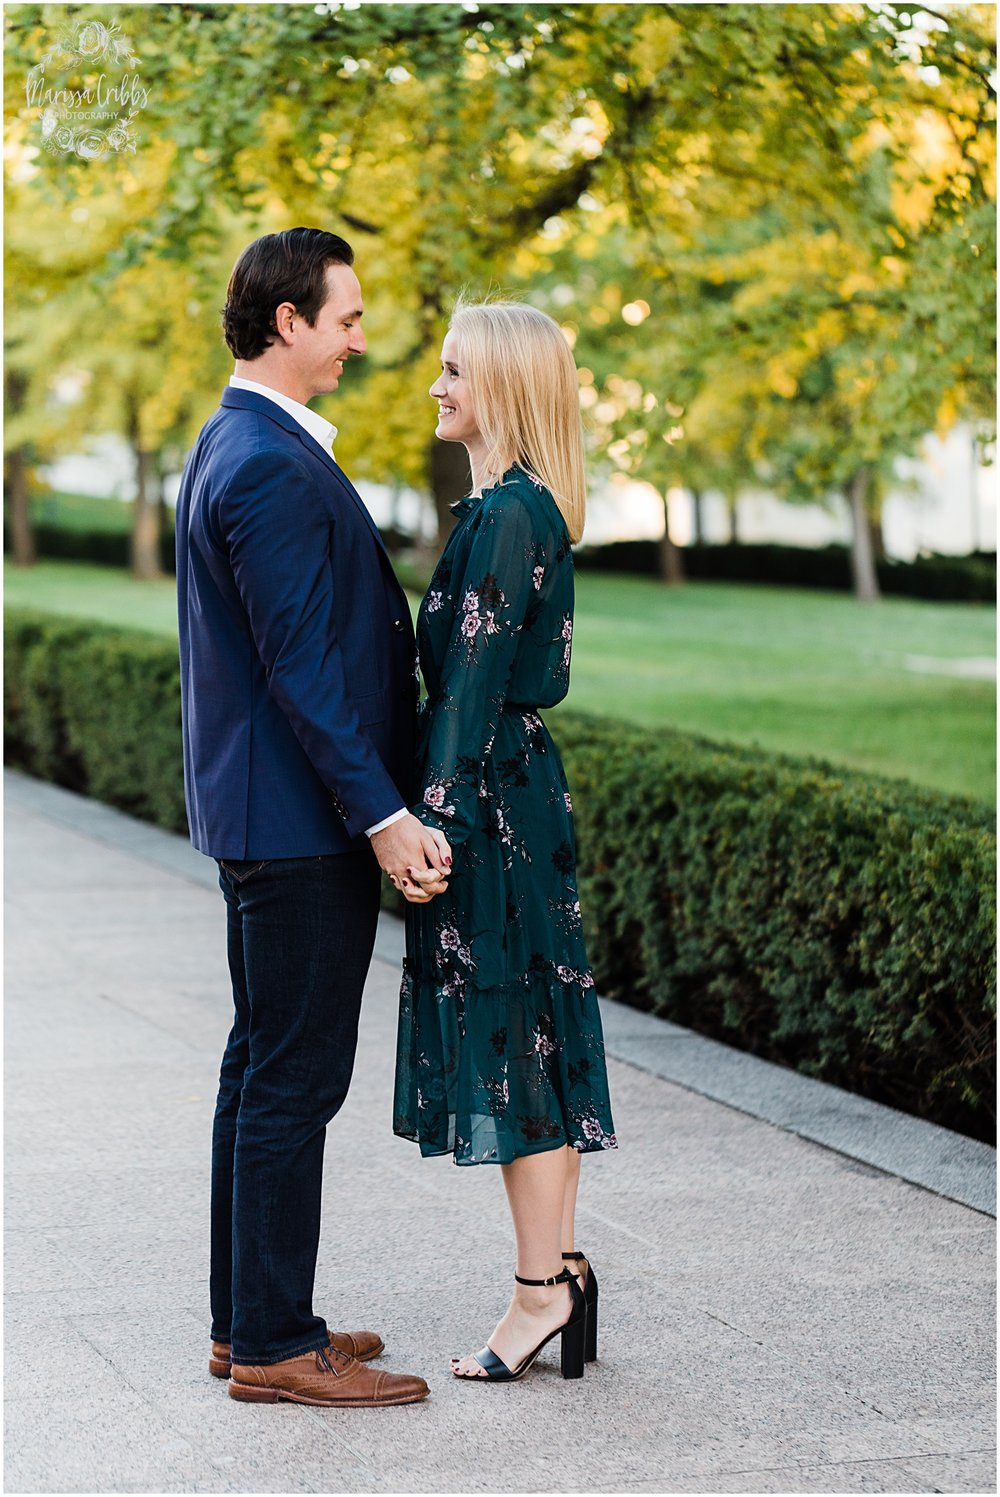 HALEY & CHASE ENGAGED LOOSE PARK & NELSON ATKINS | FALL ENGAGEMENT PHOTOS | MARISSA CRIBBS PHOTOGRAPHY_6877.jpg